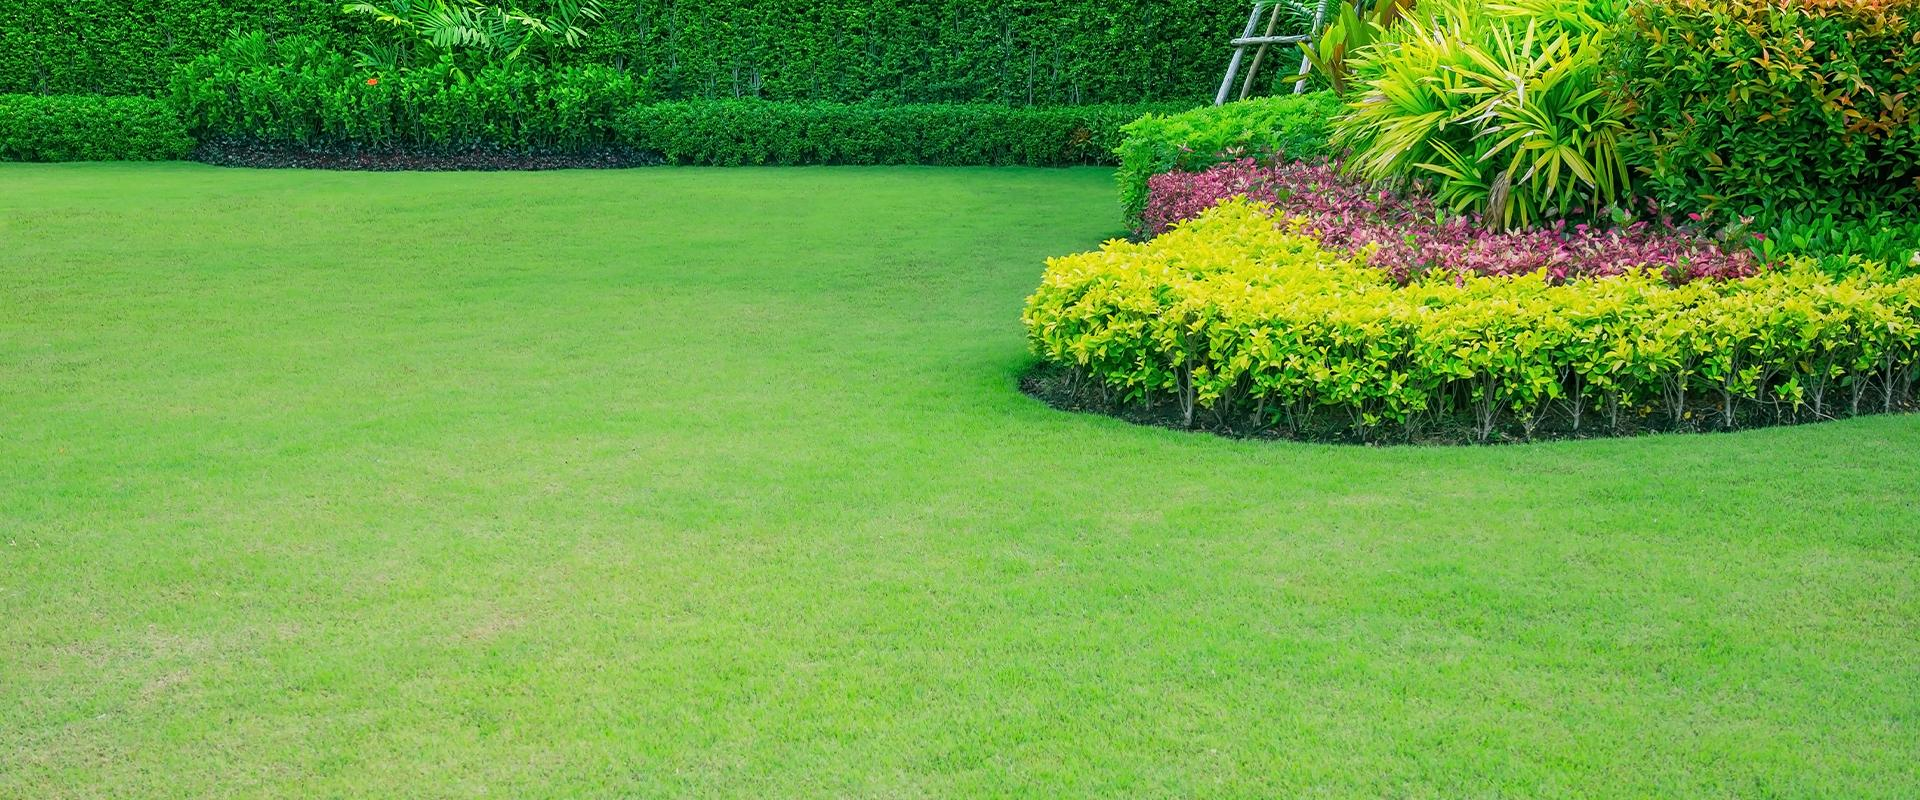 shrubs and greenery in lawn landscape